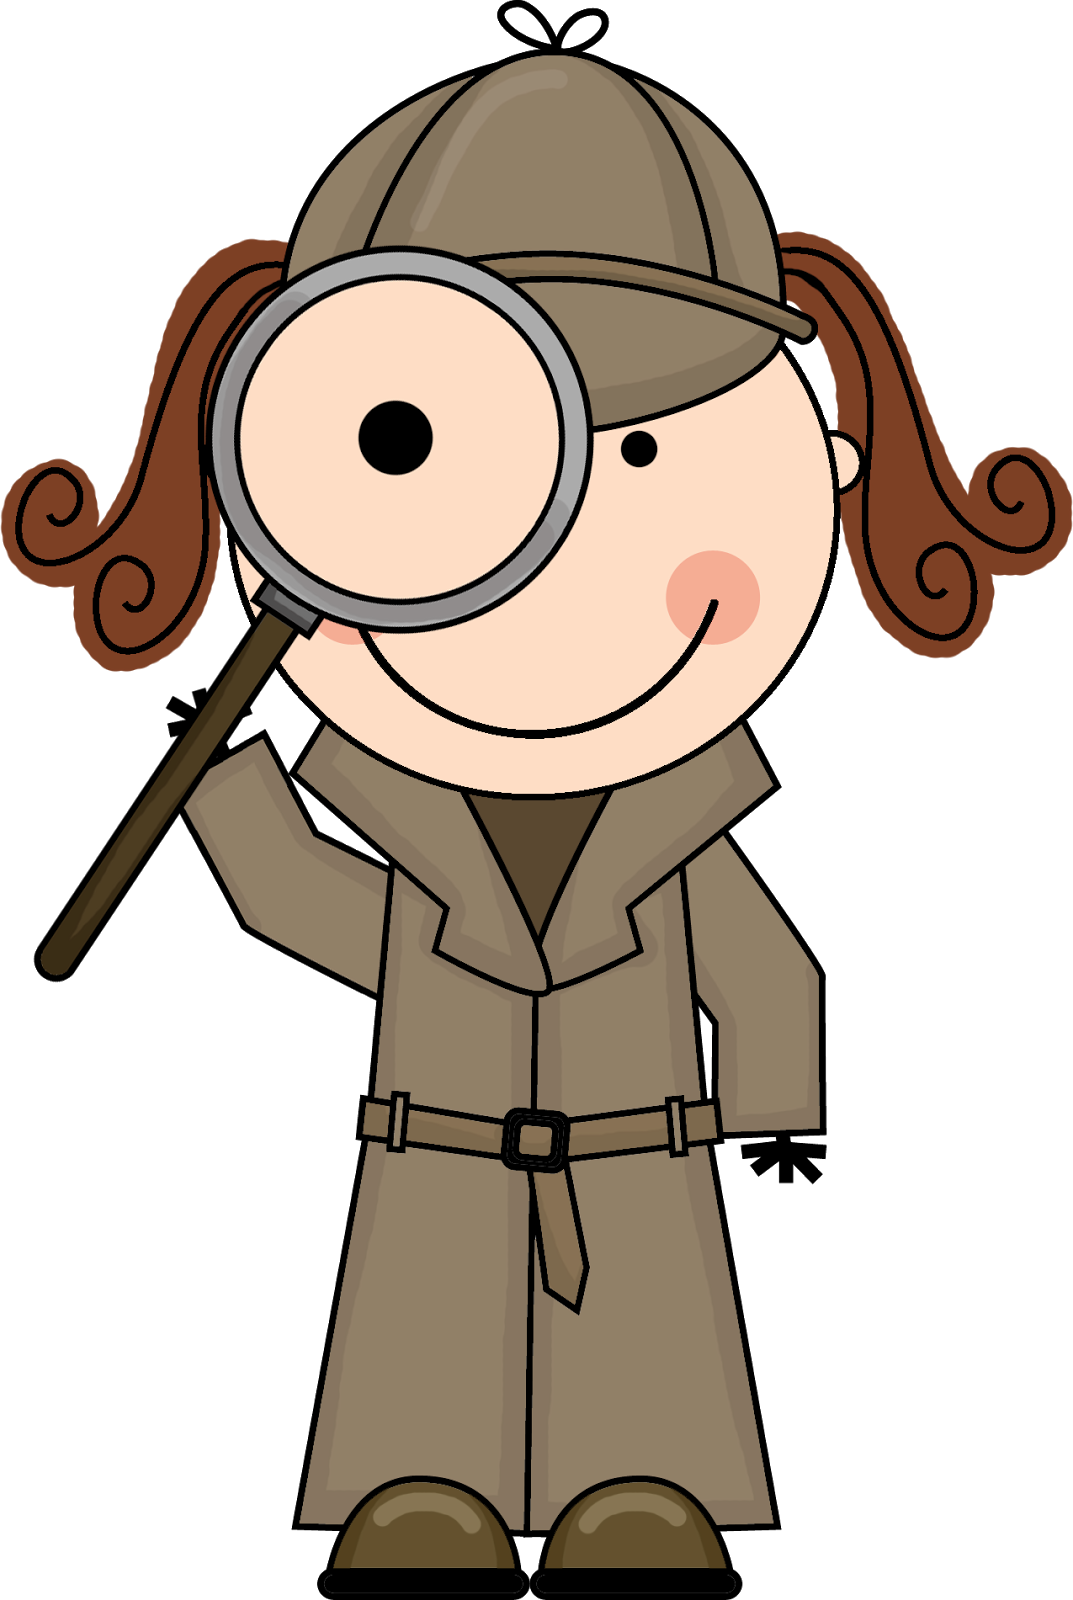 Kid detective clipart picture royalty free library kid detective clipart - Google Search | Girl Scout swaps | Detective ... picture royalty free library